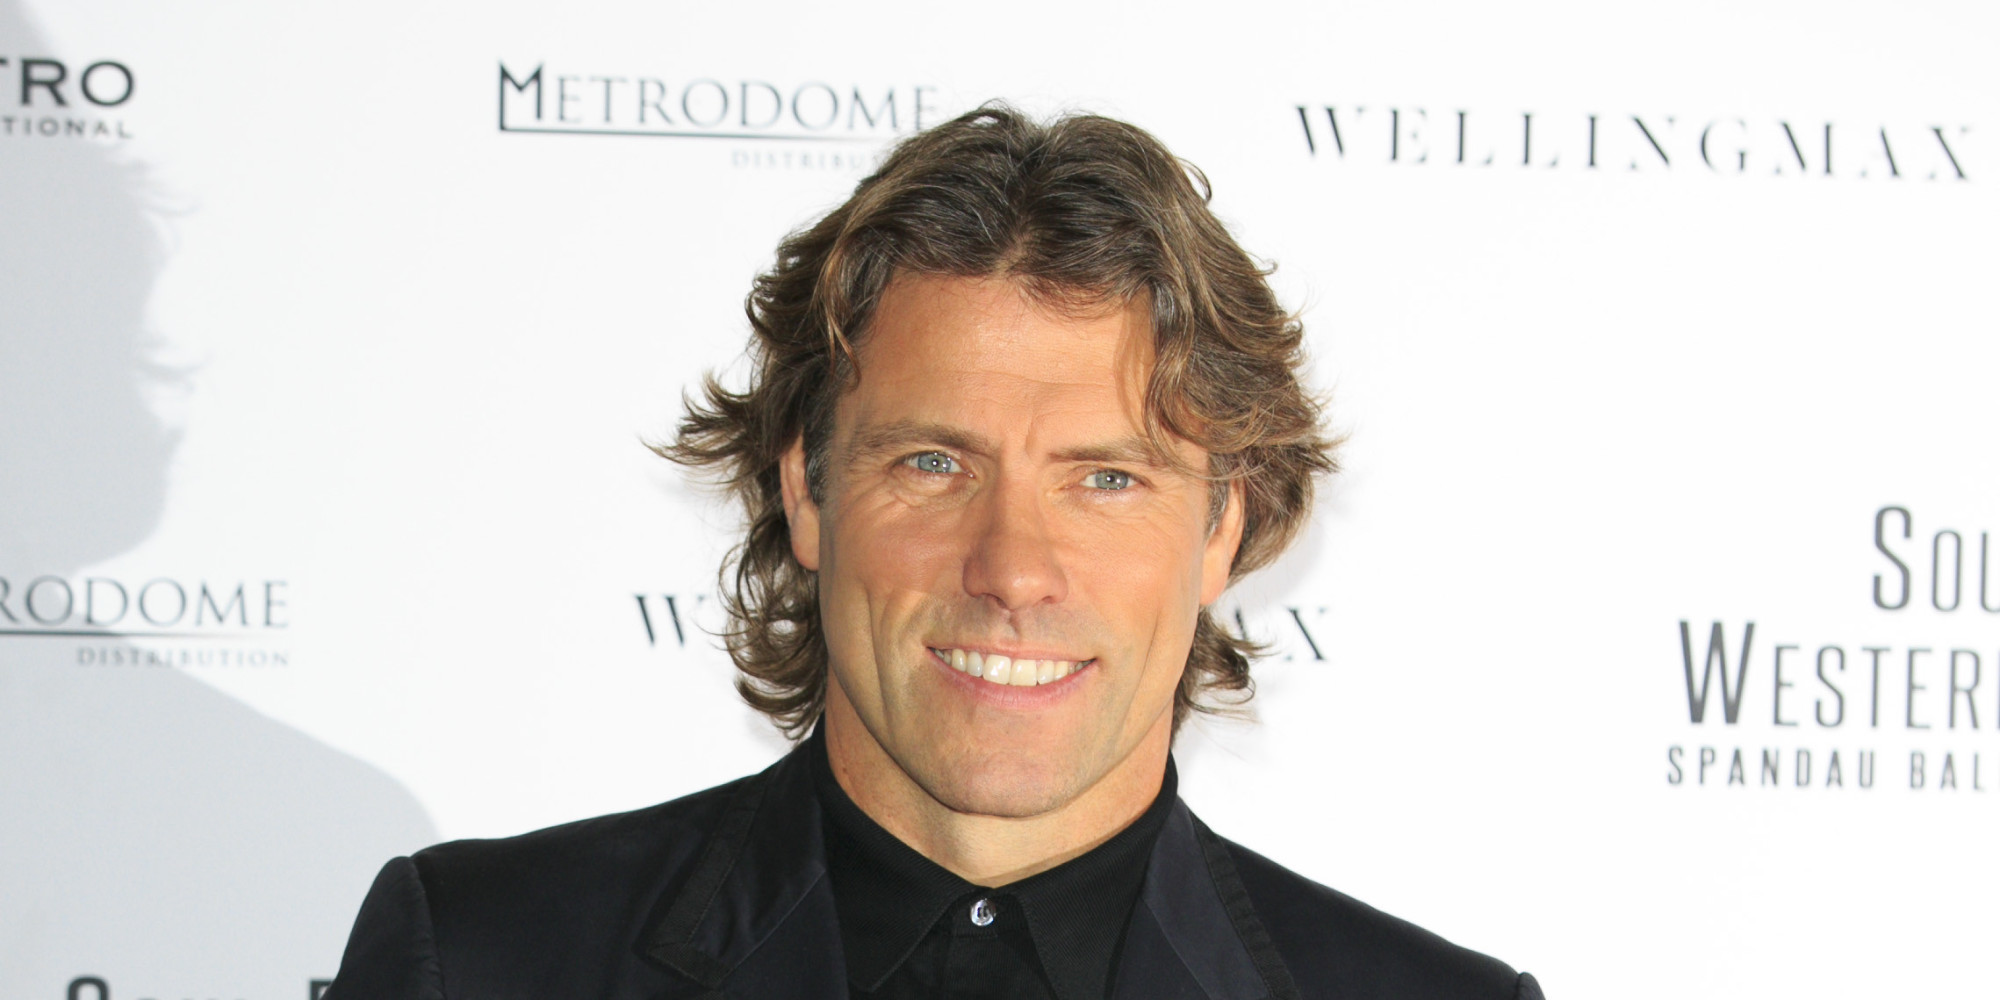 The 51-year old son of father Ernie Bishop and mother Kathy Bishop, 180 cm tall John Bishop in 2018 photo